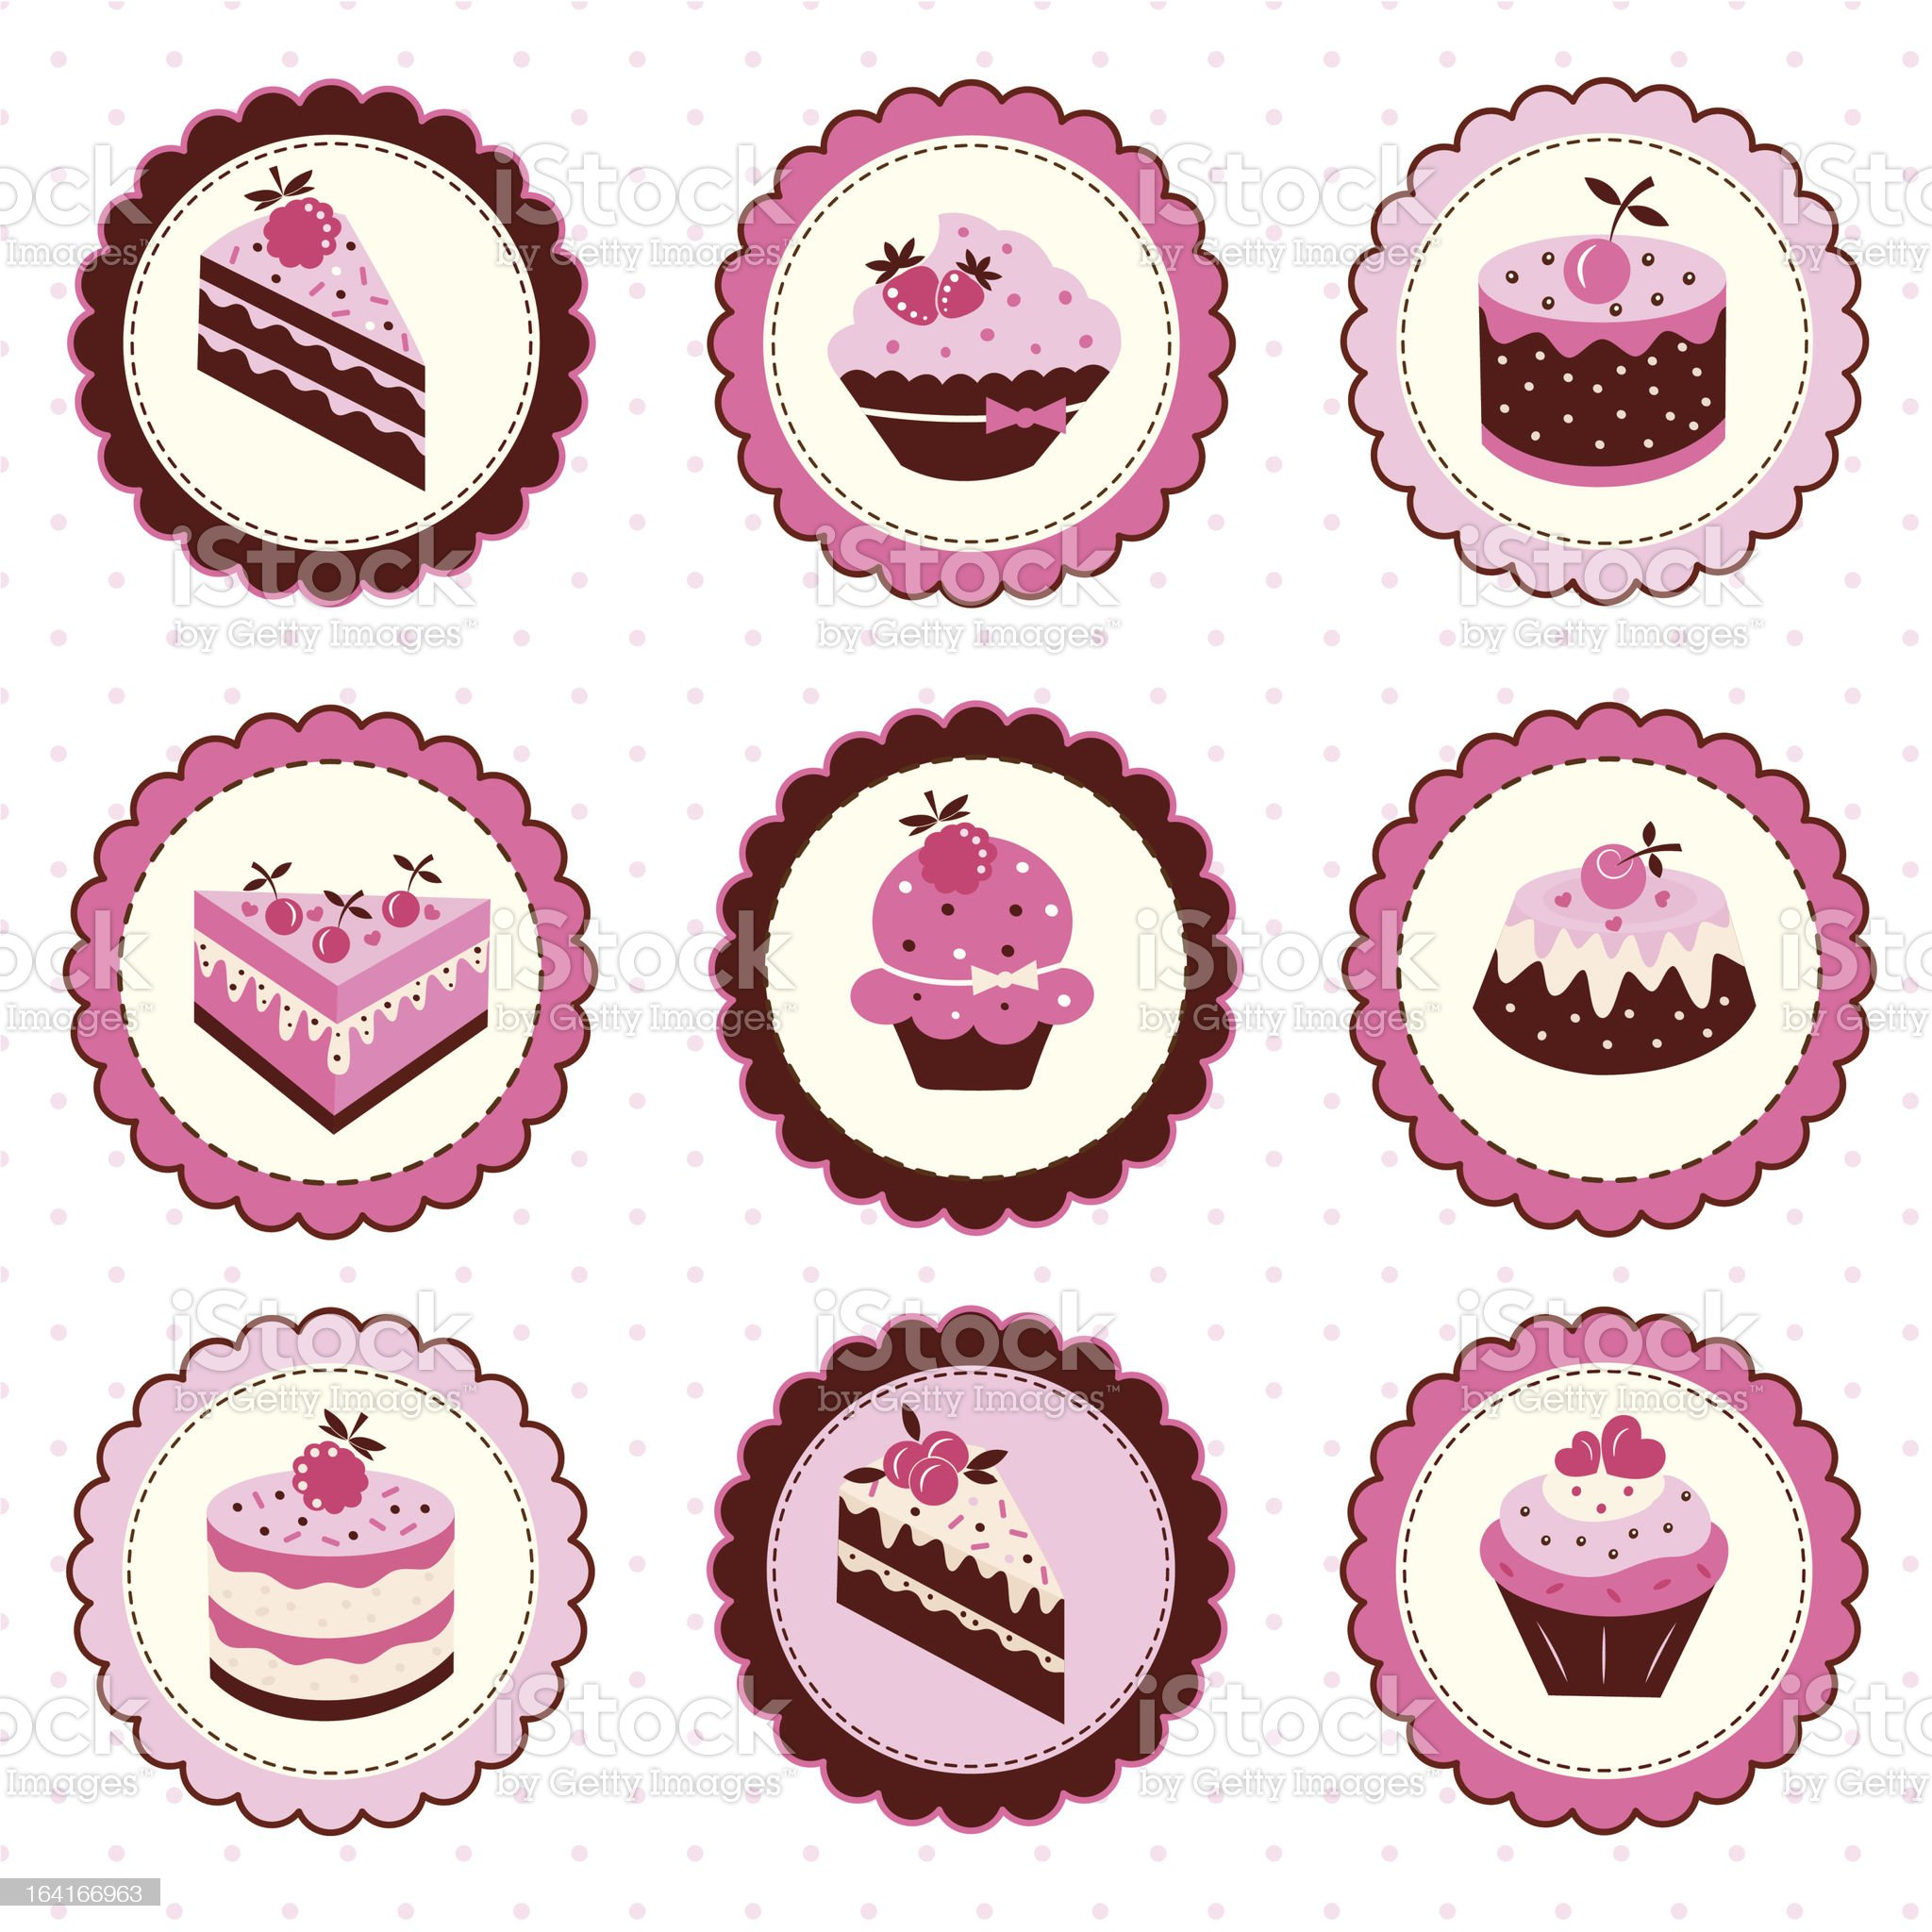 Set of cakes stickers royalty-free stock vector art